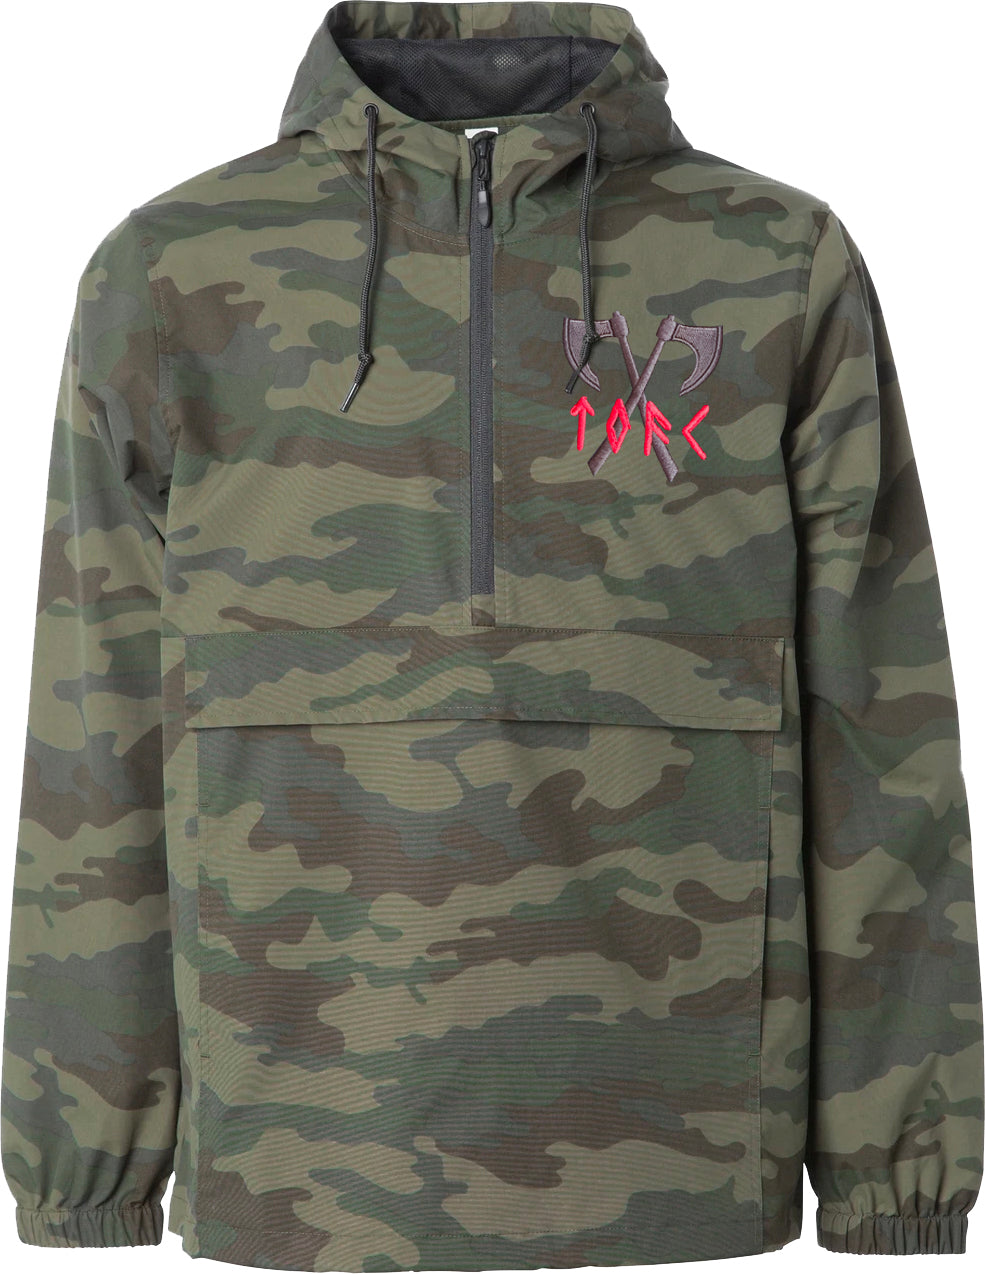 The Old Firm Casuals - Axes - Windbreaker Jacket - Camo